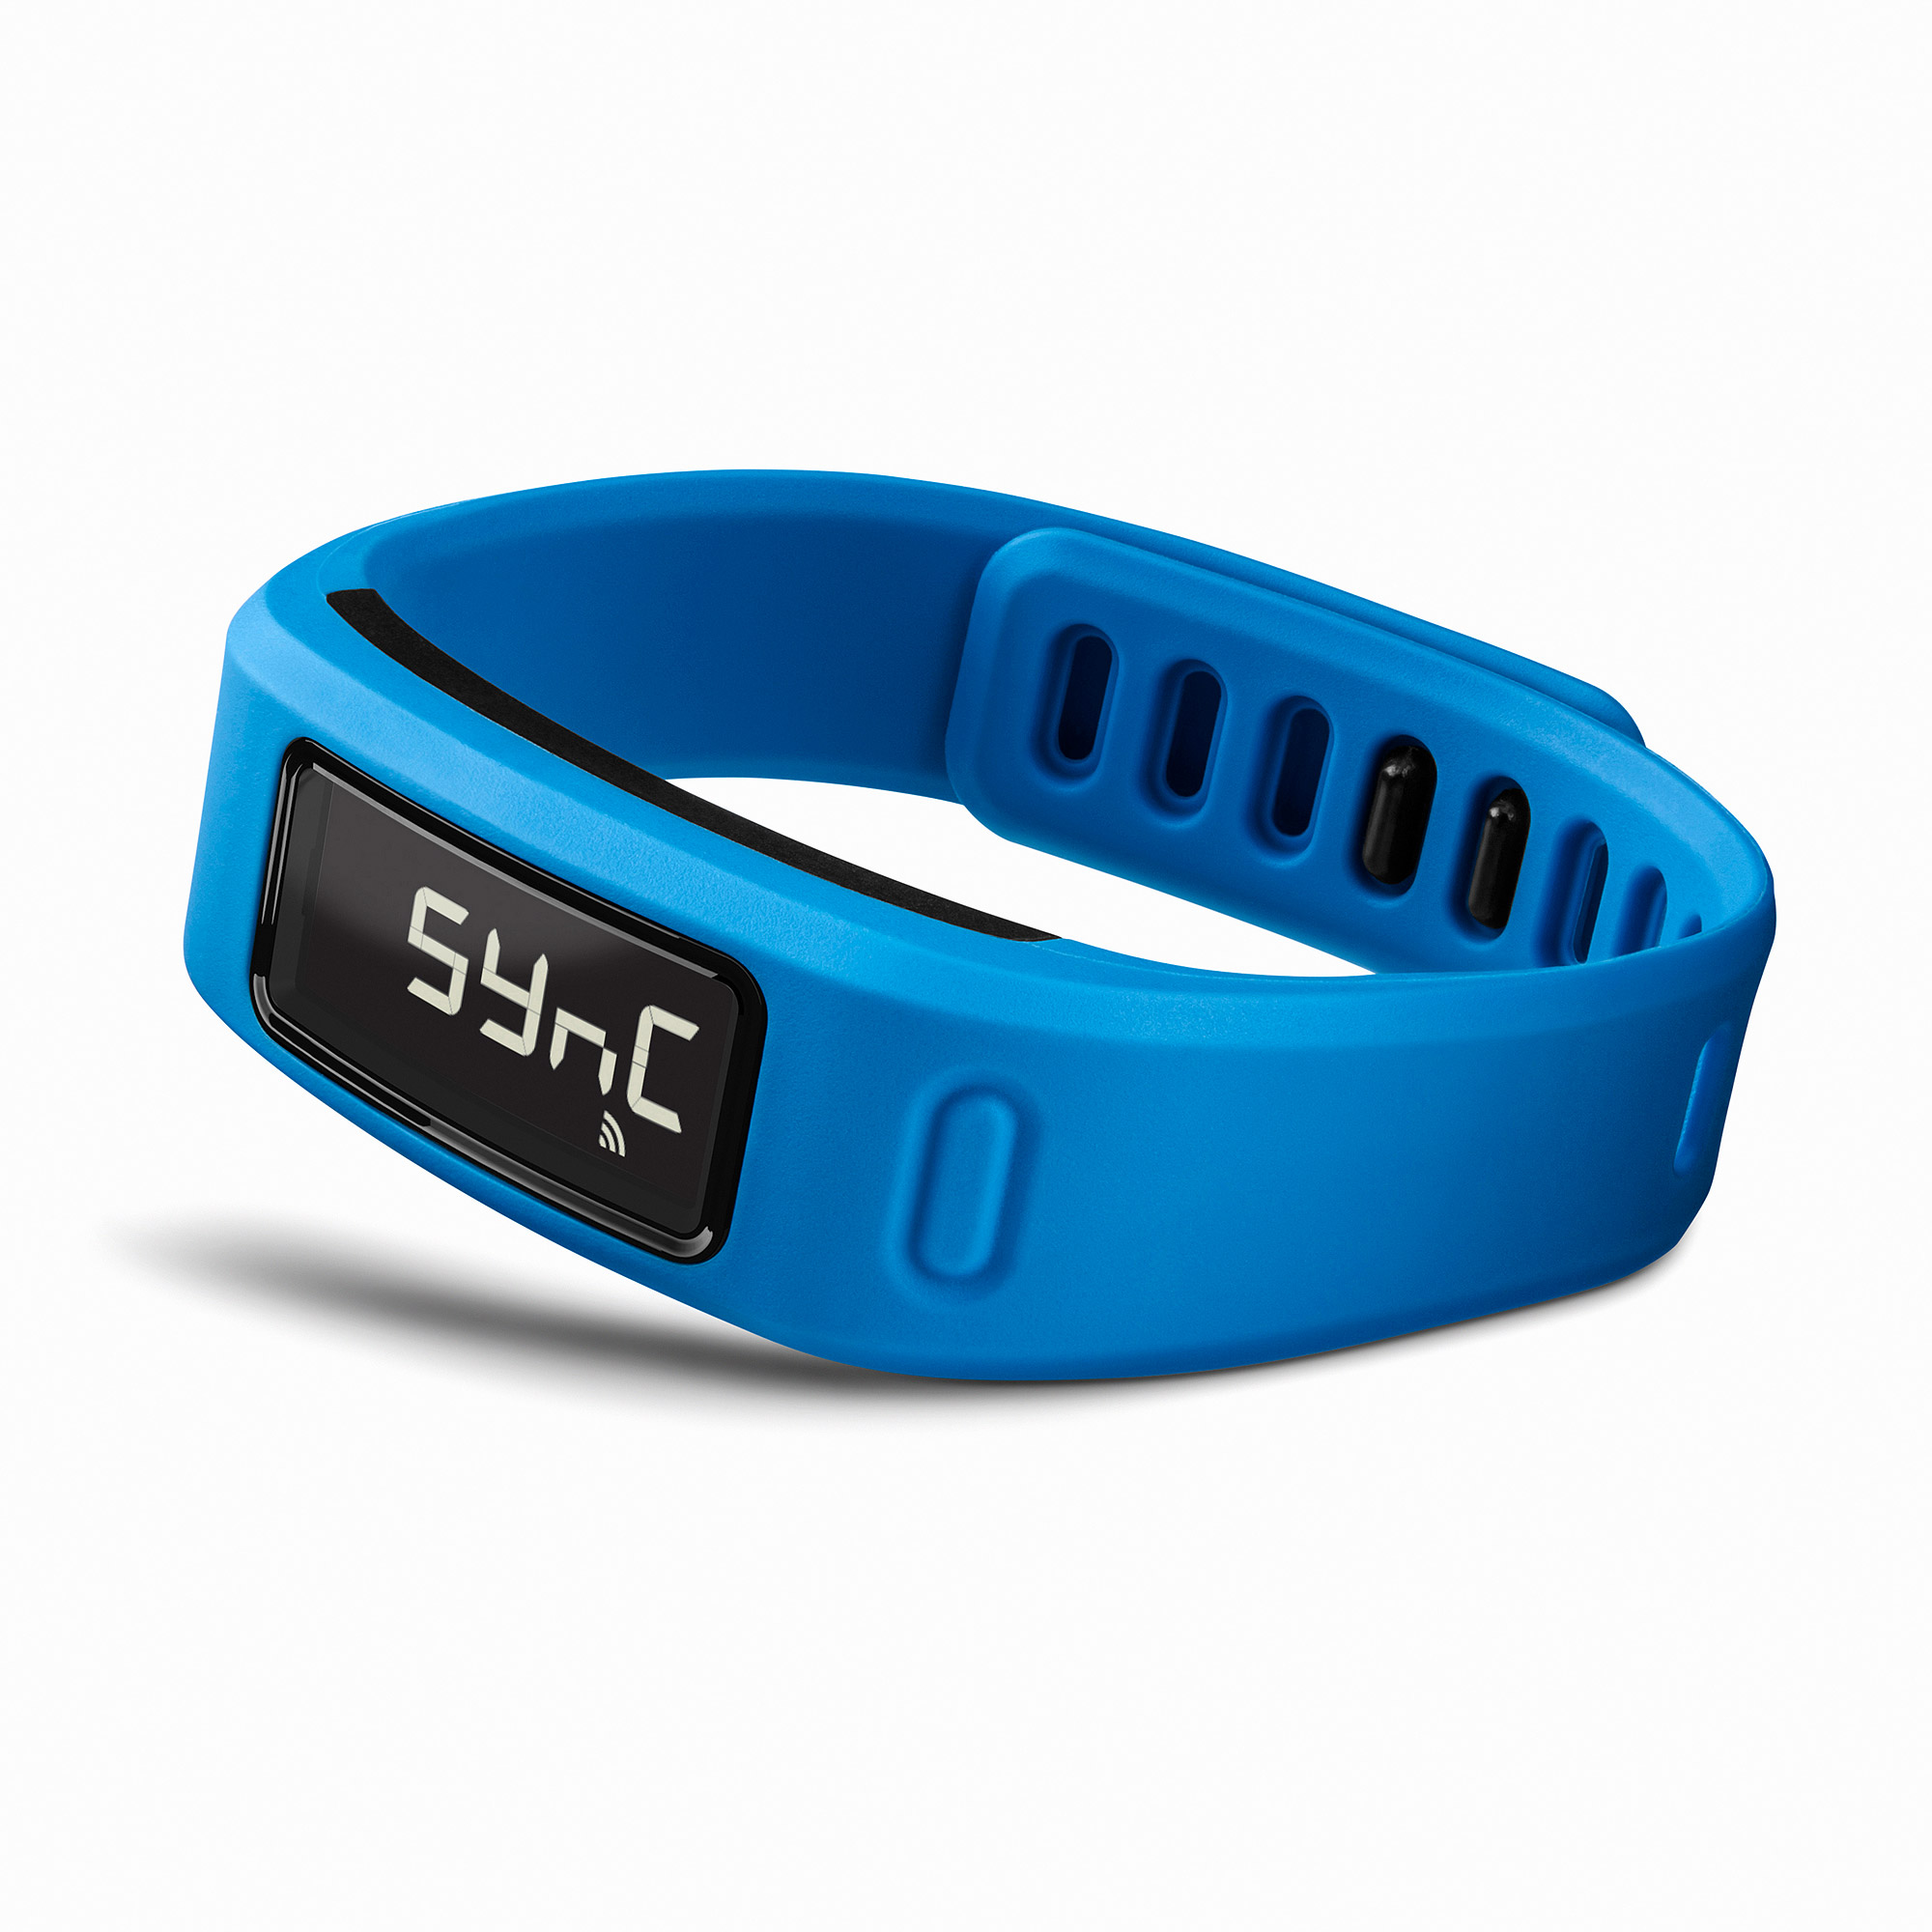 Garmin Vivofit Fitness Band, Bundled with HRM, Available in Multiple Colors